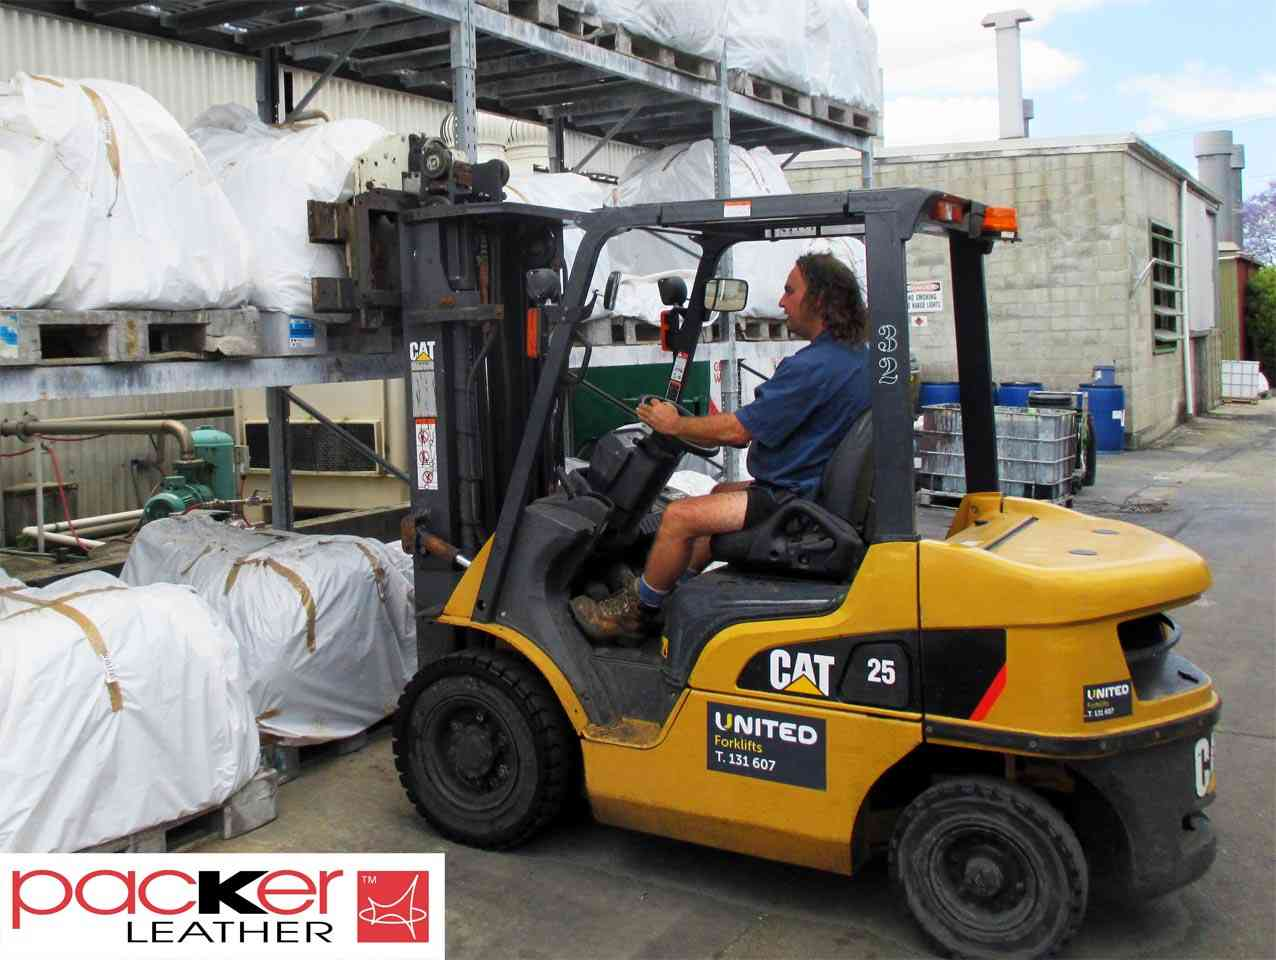 Packer Leather using United's CAT DP25N forklifts to lift uptime, efficiency and safety.